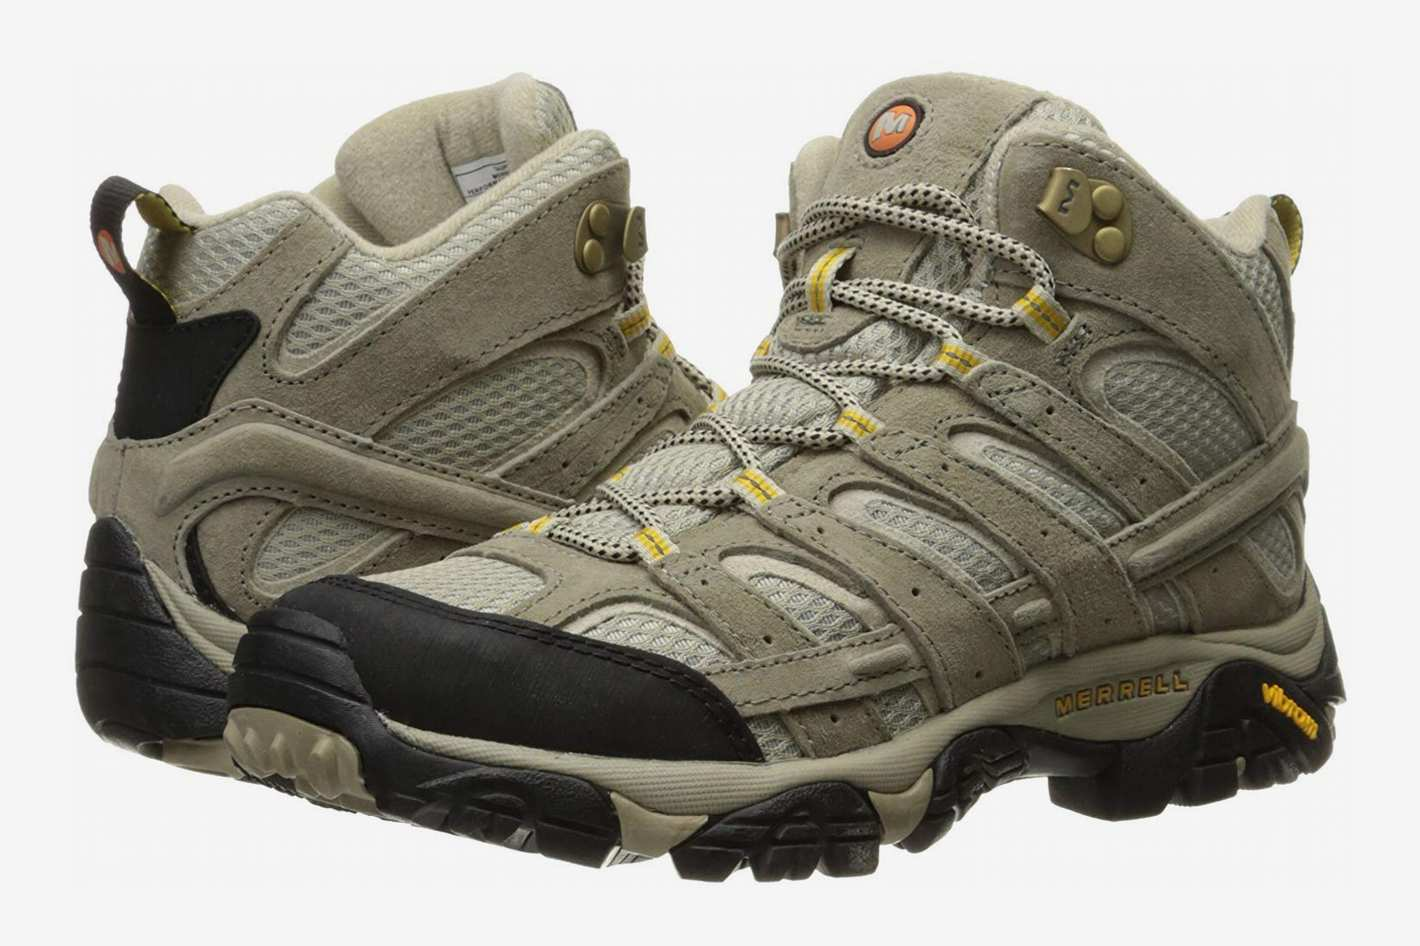 Merrell Women's Moab 2 Vent Mid Hiking Boot